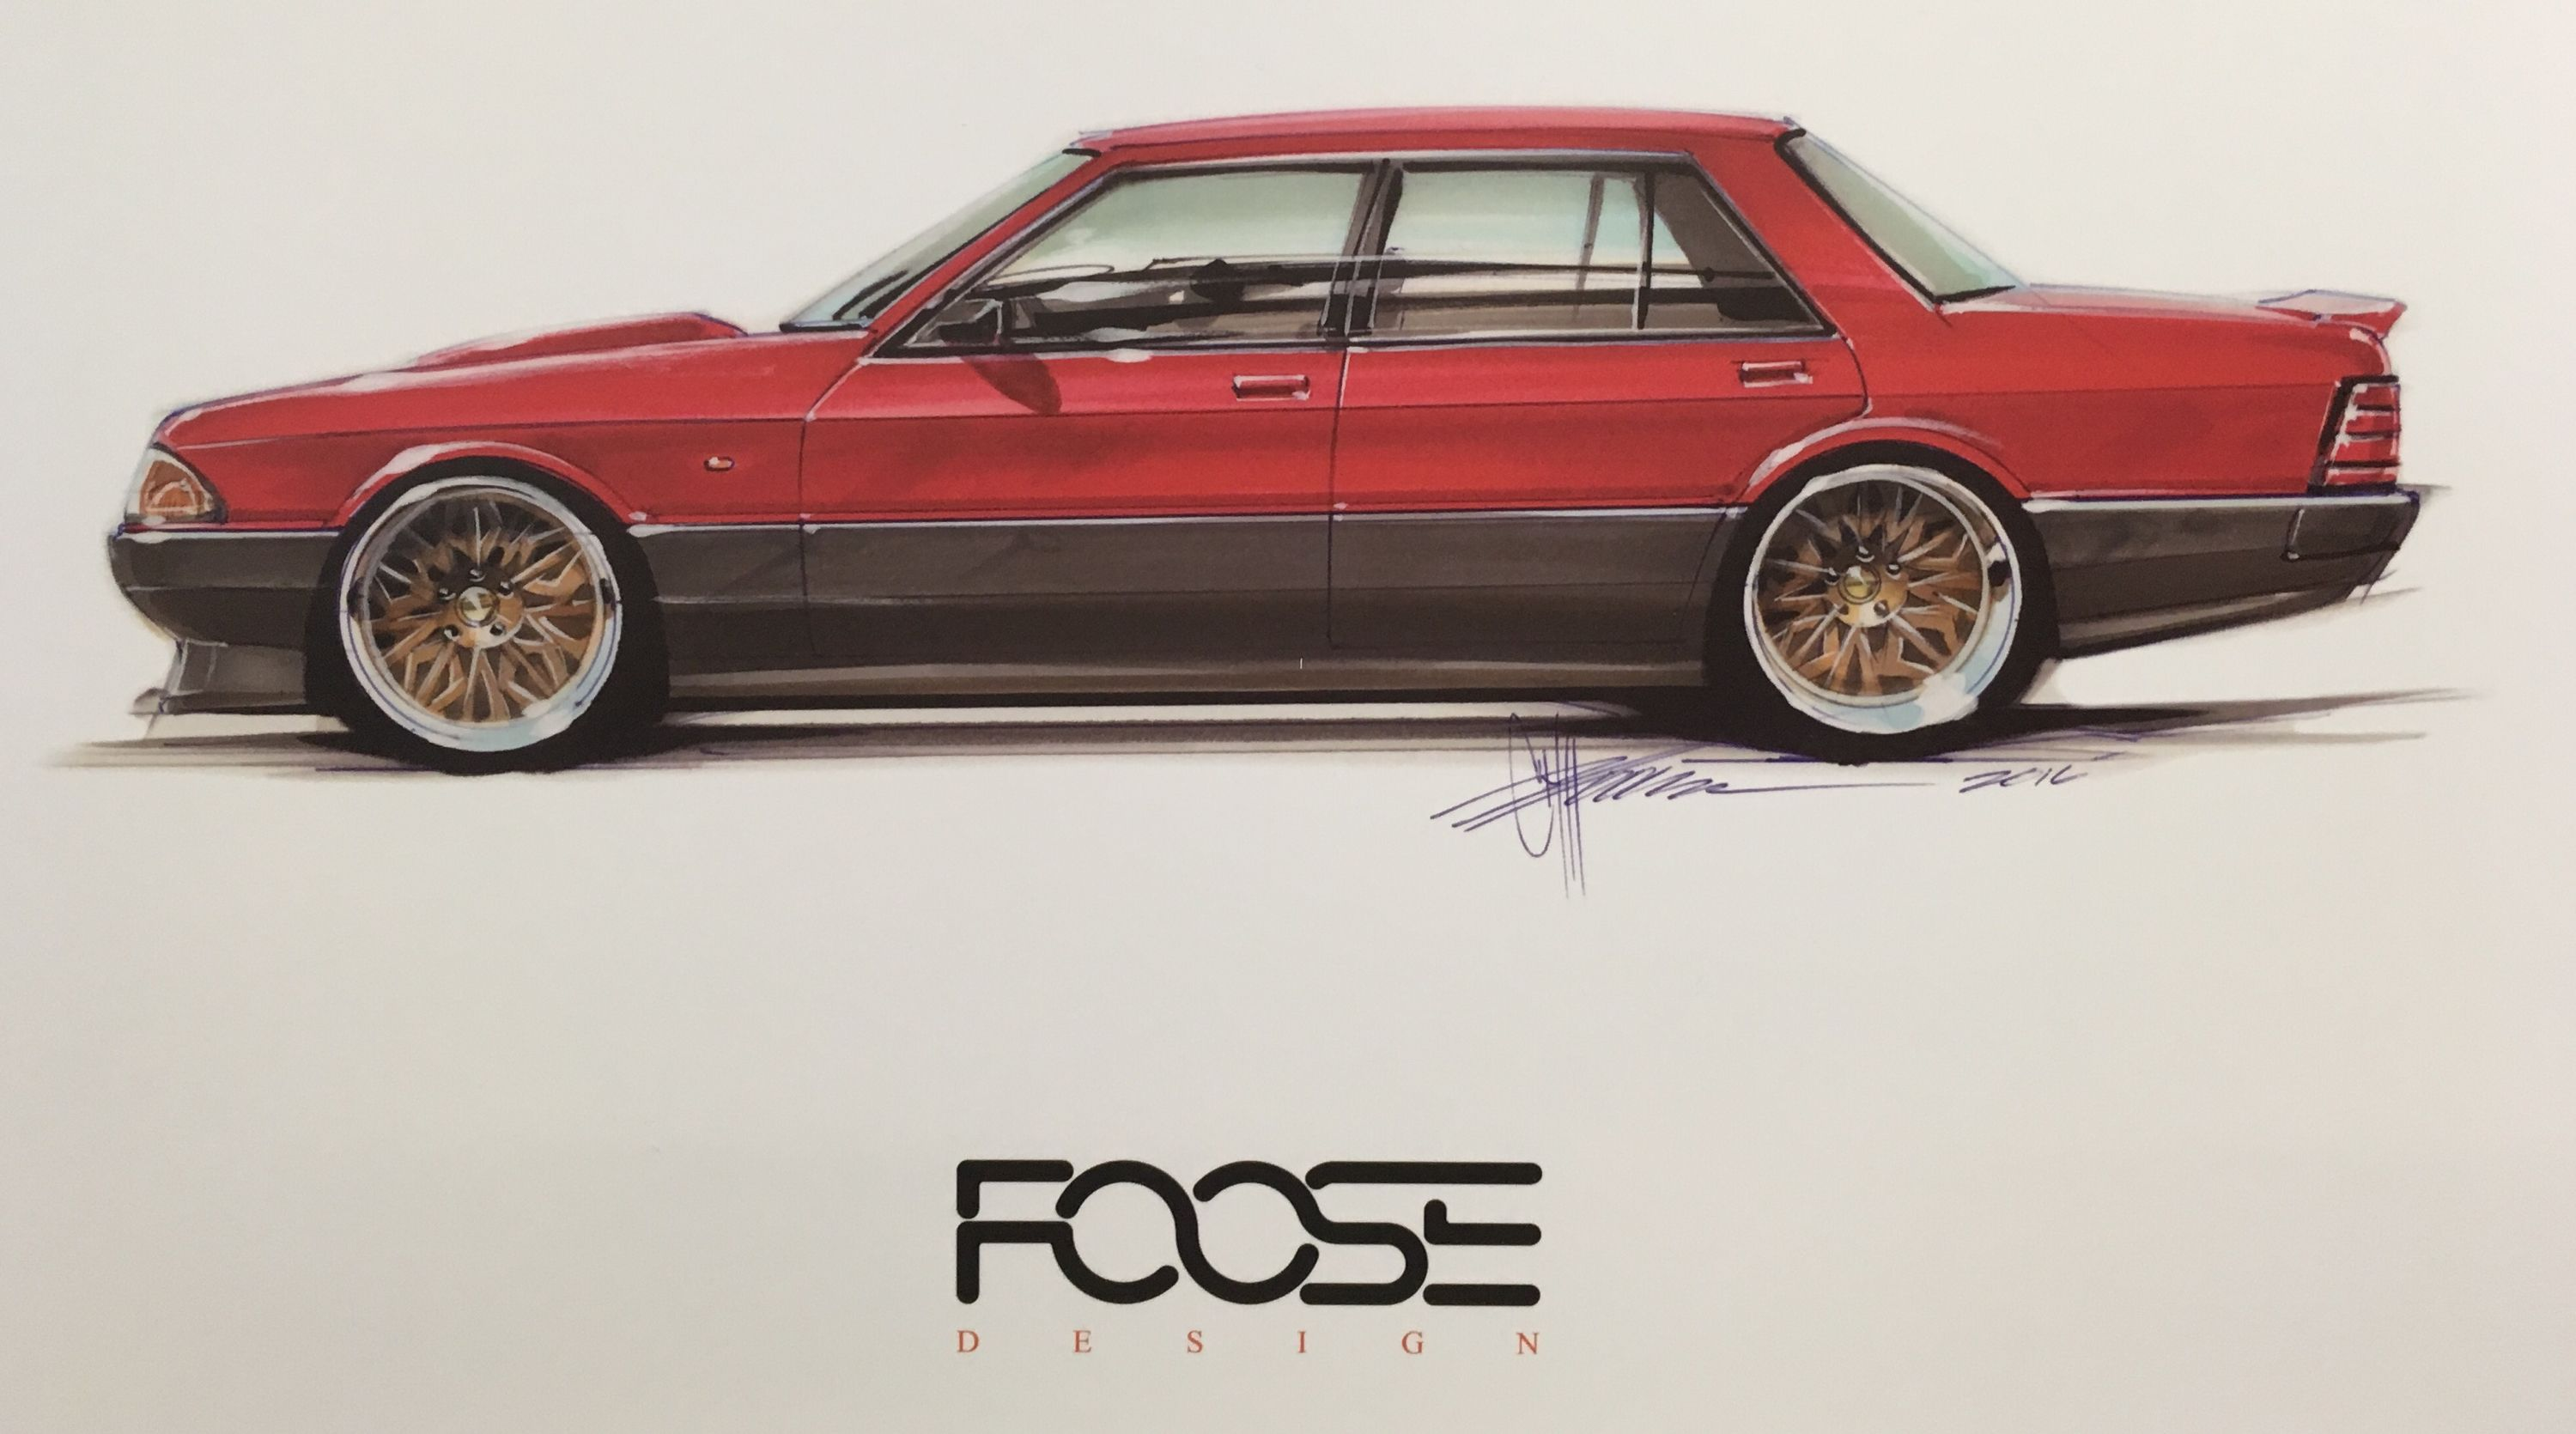 Ford Xd Falcon Drawn By Foose Chip Foose Foose Australian Muscle Cars